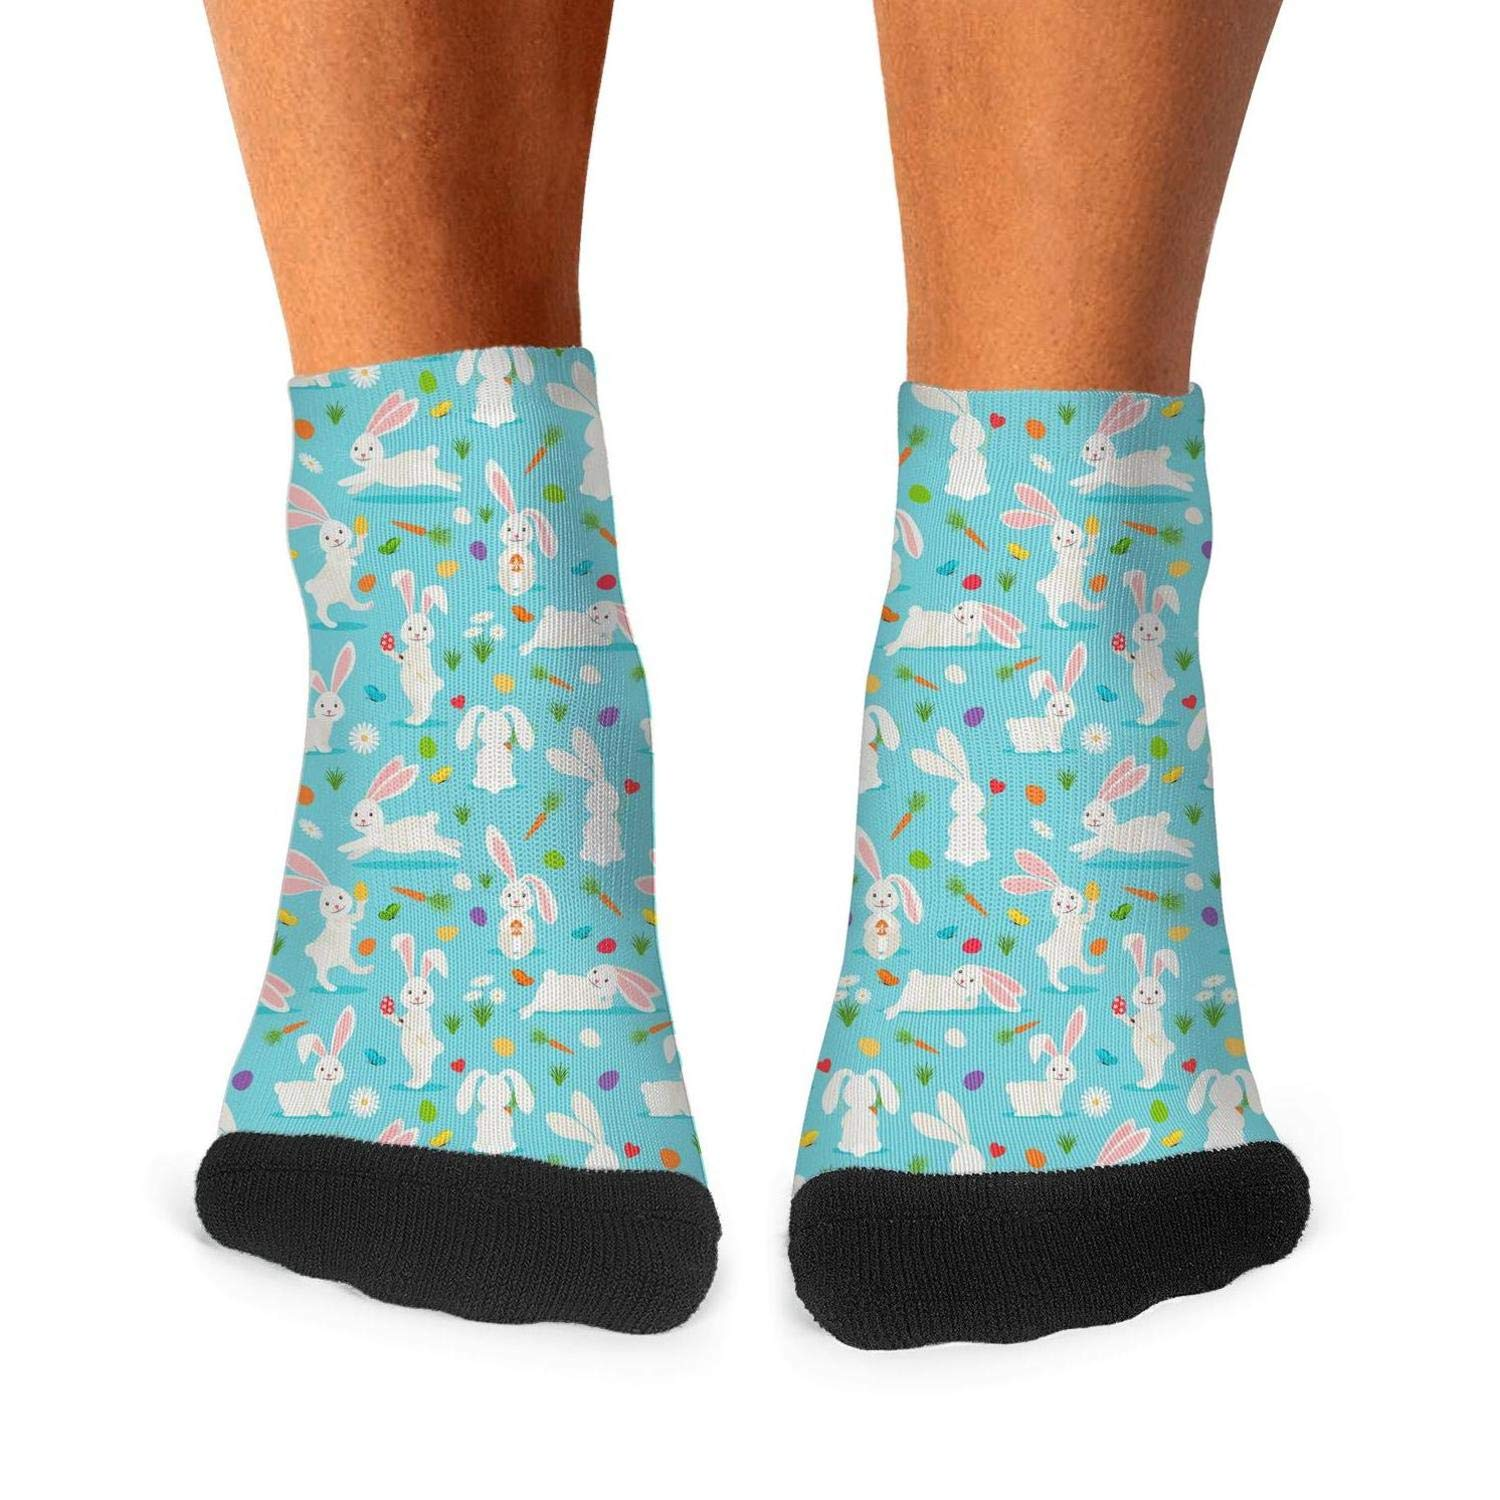 Tasbon Mens All-season Sports Socks Cute White Rabbit Bunnies Wth Carrots Blue Athletic Socks